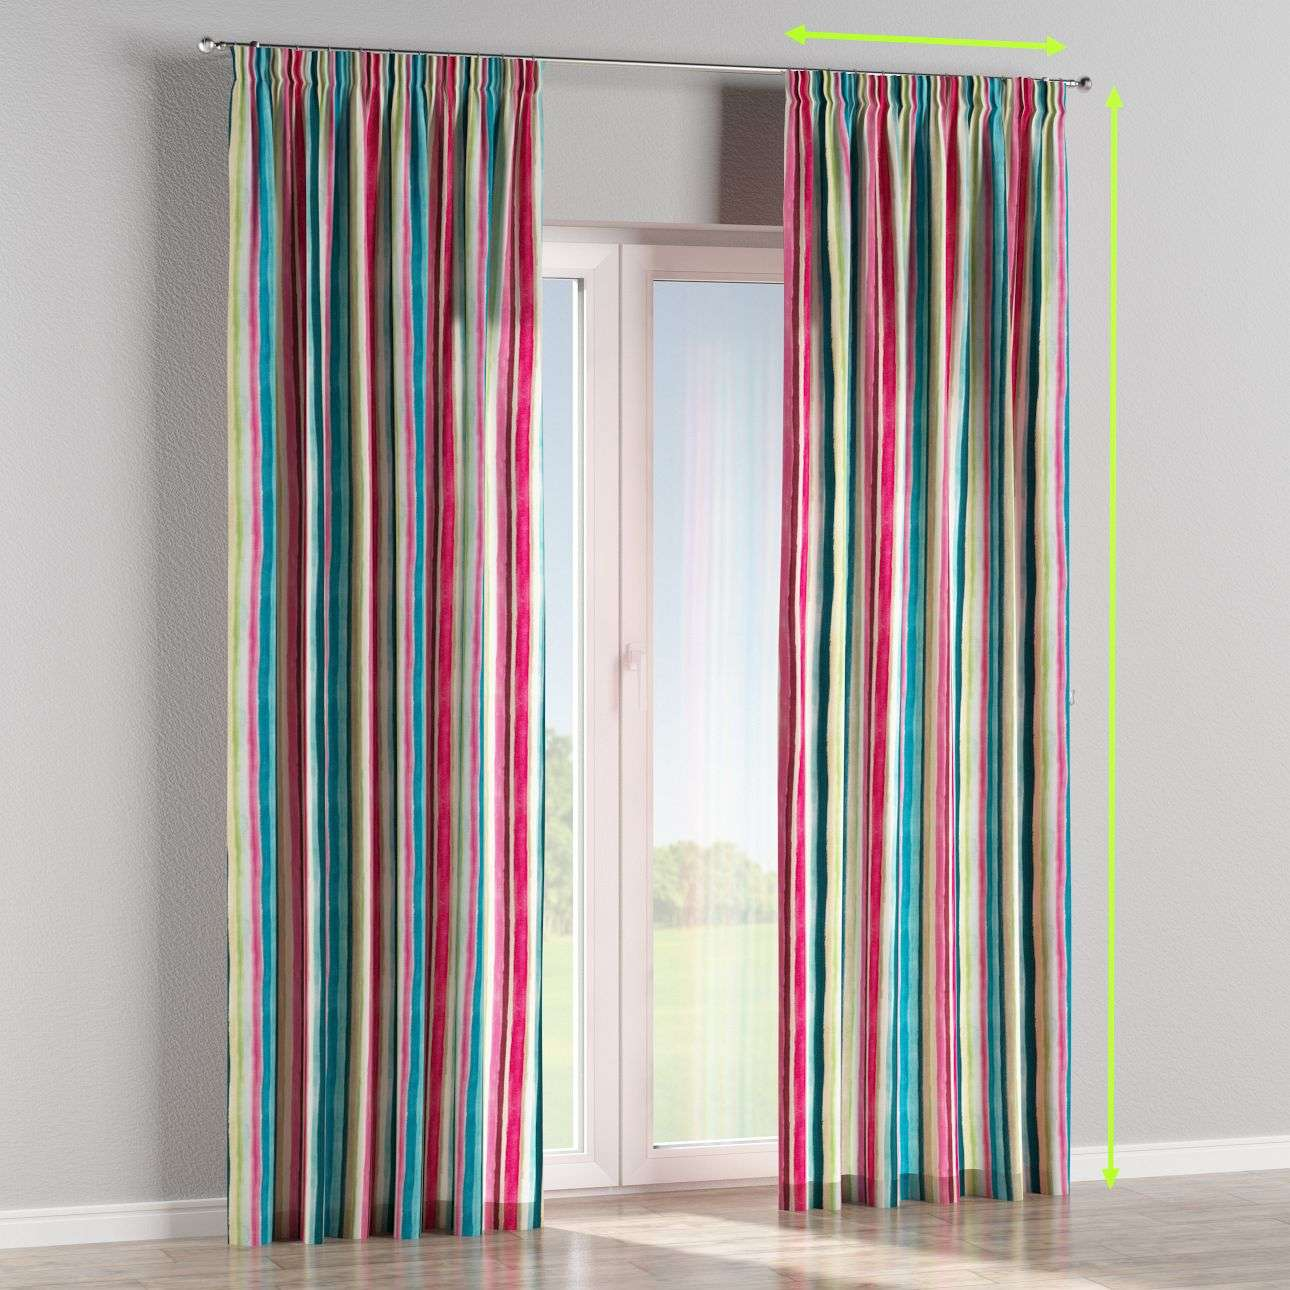 Pencil pleat curtain in collection Monet, fabric: 140-09